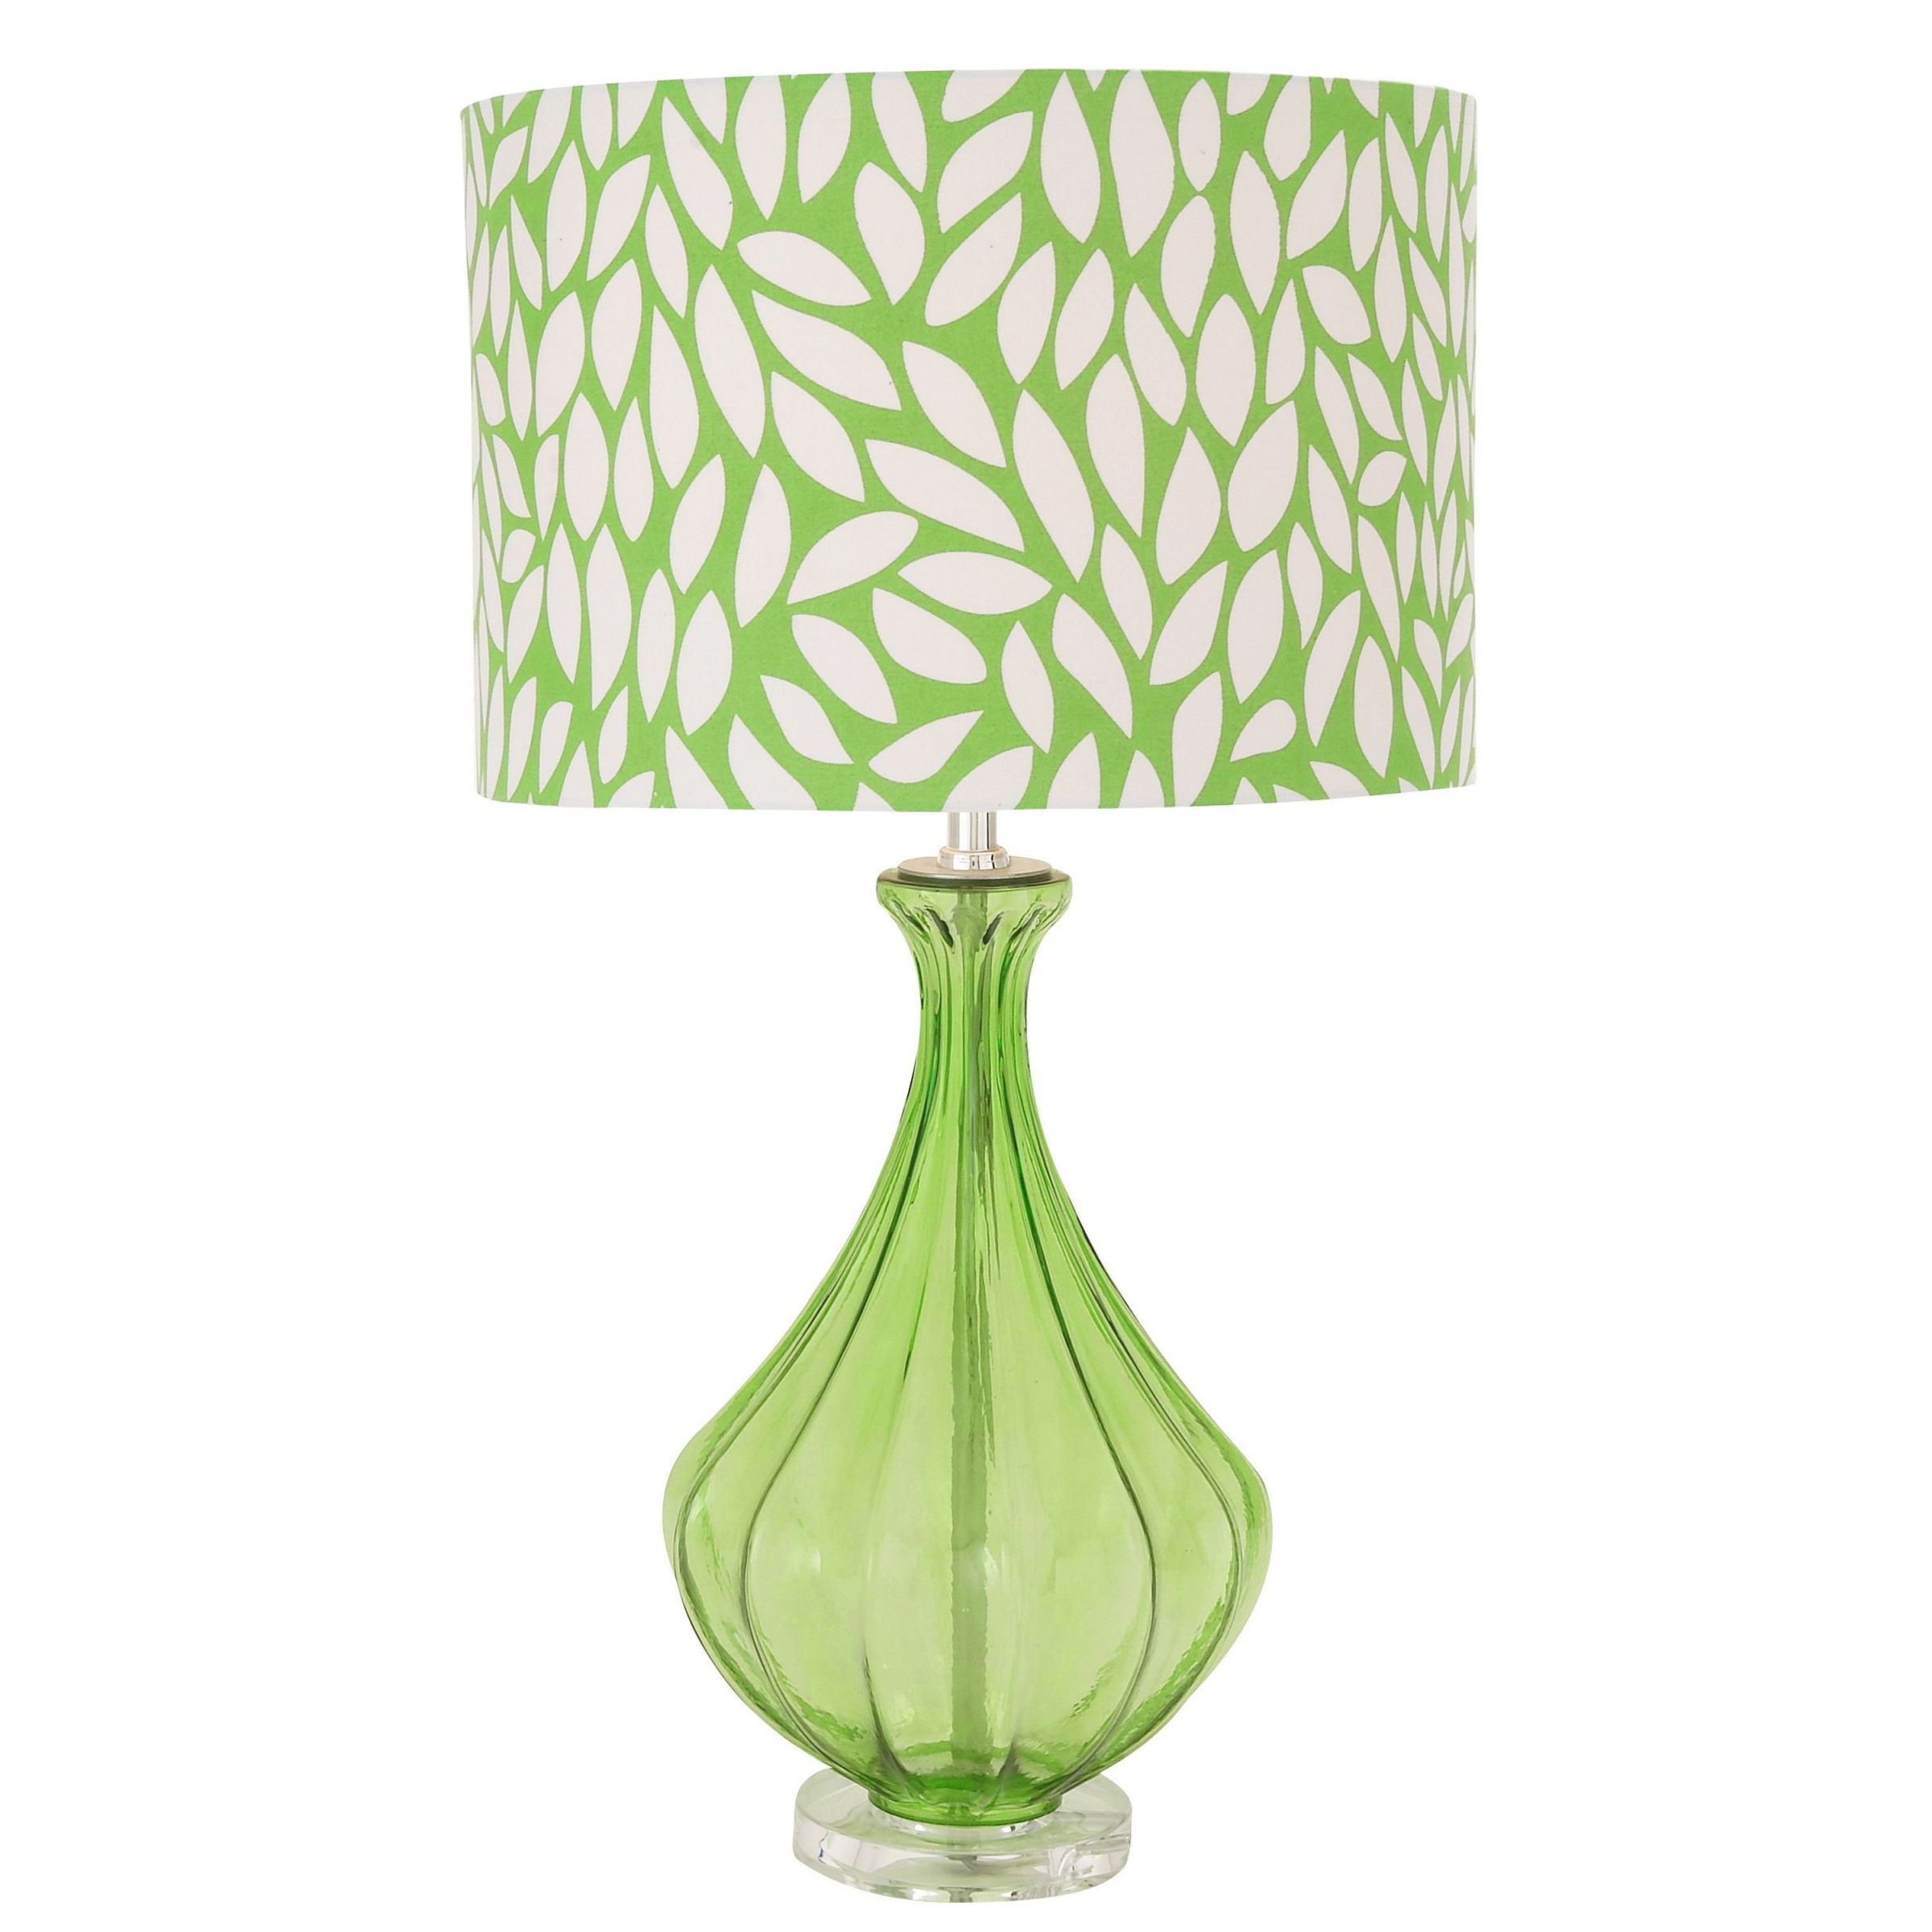 teen table lamps new cool green contemporary glass acrylic accent modern furniture design round drum side narrow decorative home decor inspiration pacific bar west elm safavieh